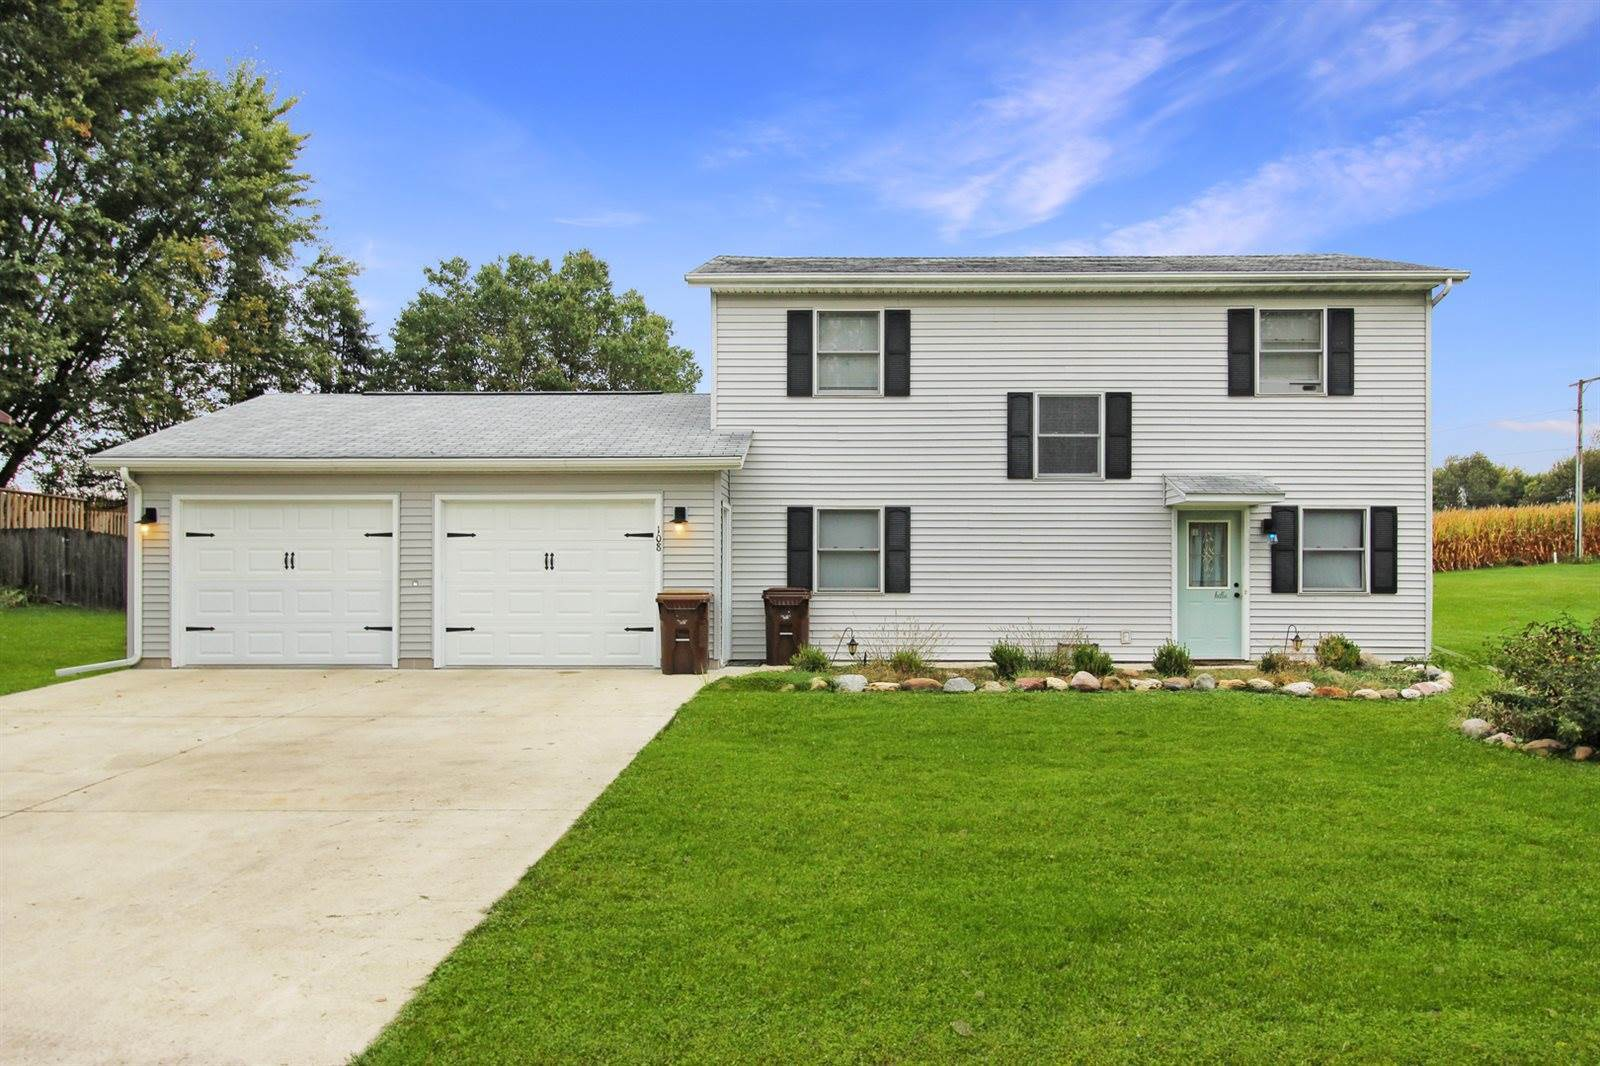 108 Hillside, Polo, IL 61064